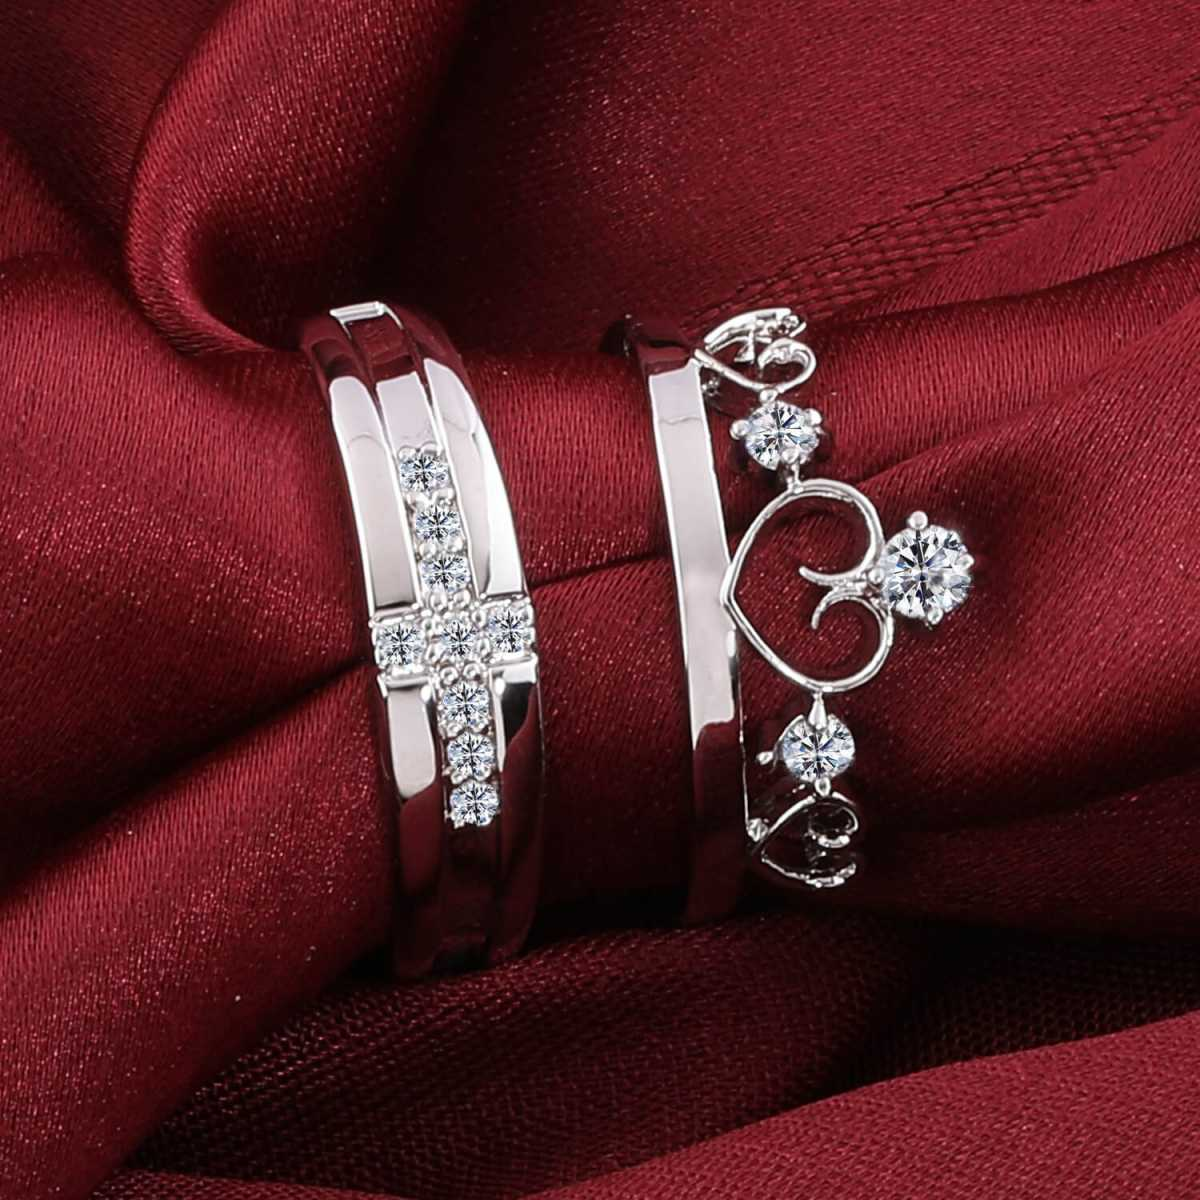 Silver Shine Silver Plated Solitaire king and Queen Adjustable Couple ring  with American diamond and crystal stones for Men and Women,Couple ring for Girls and Boys-2 pieces